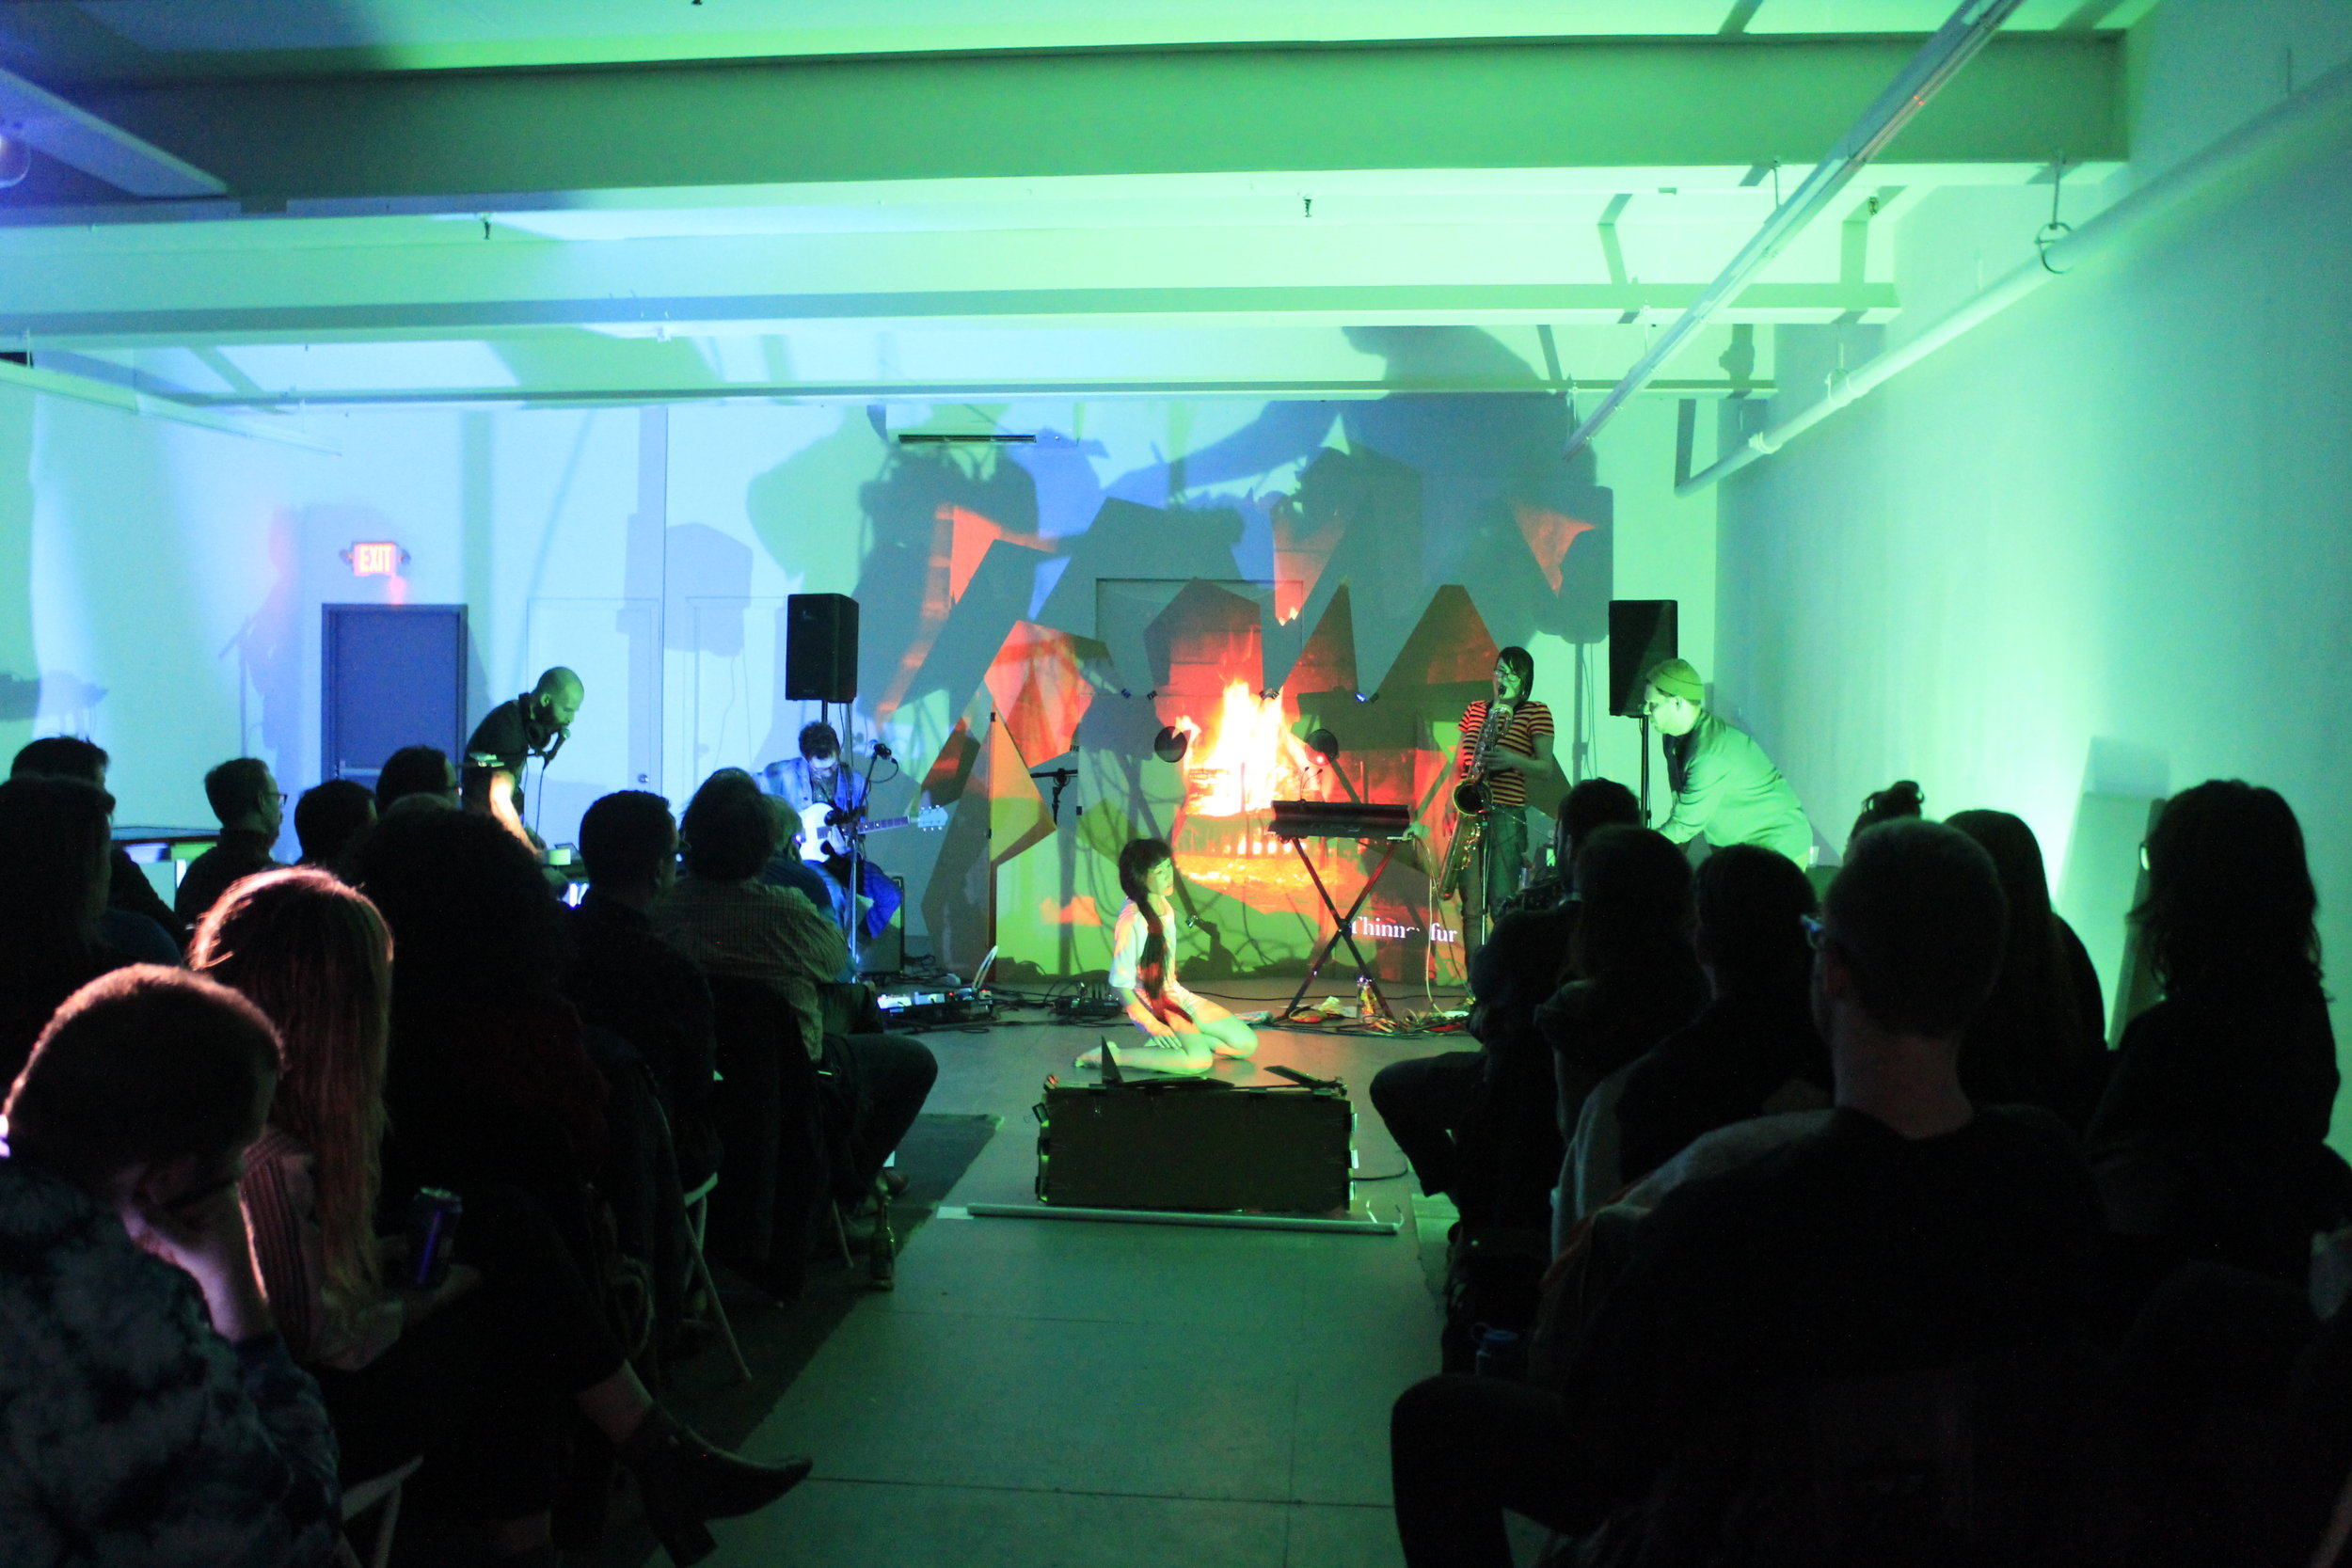 captured from Braided Sound: Brooklyn @ the microscope gallery; taken by Harmony Pilobello